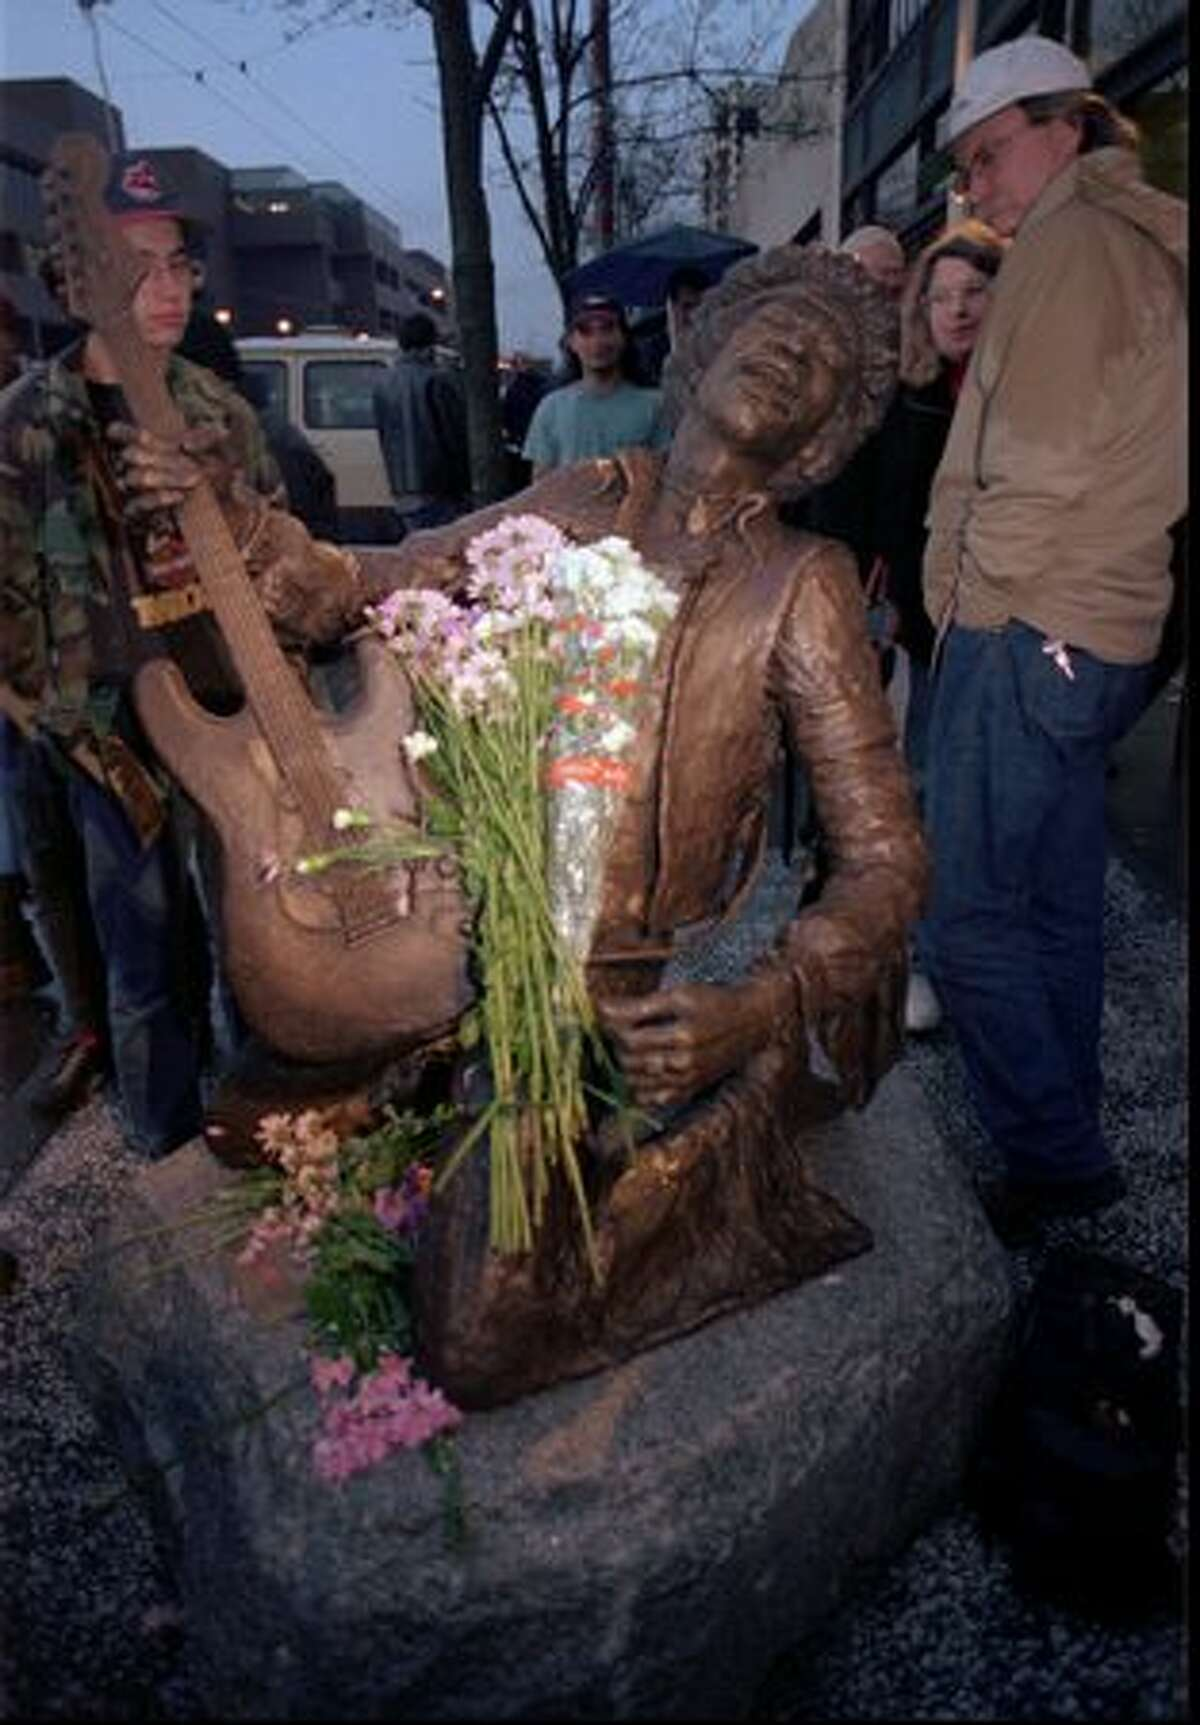 Fans view a bronze statue of the late guitarist Jimi Hendrix at an unveiling ceremony Tuesday, Jan. 21, 1997, outside the corporate offices of AEI Music in Seattle. AEI Music commissioned the statue to memorialize Hendrix's 1970 Fender Stratocaster guitar, which AEI owned, as part of their